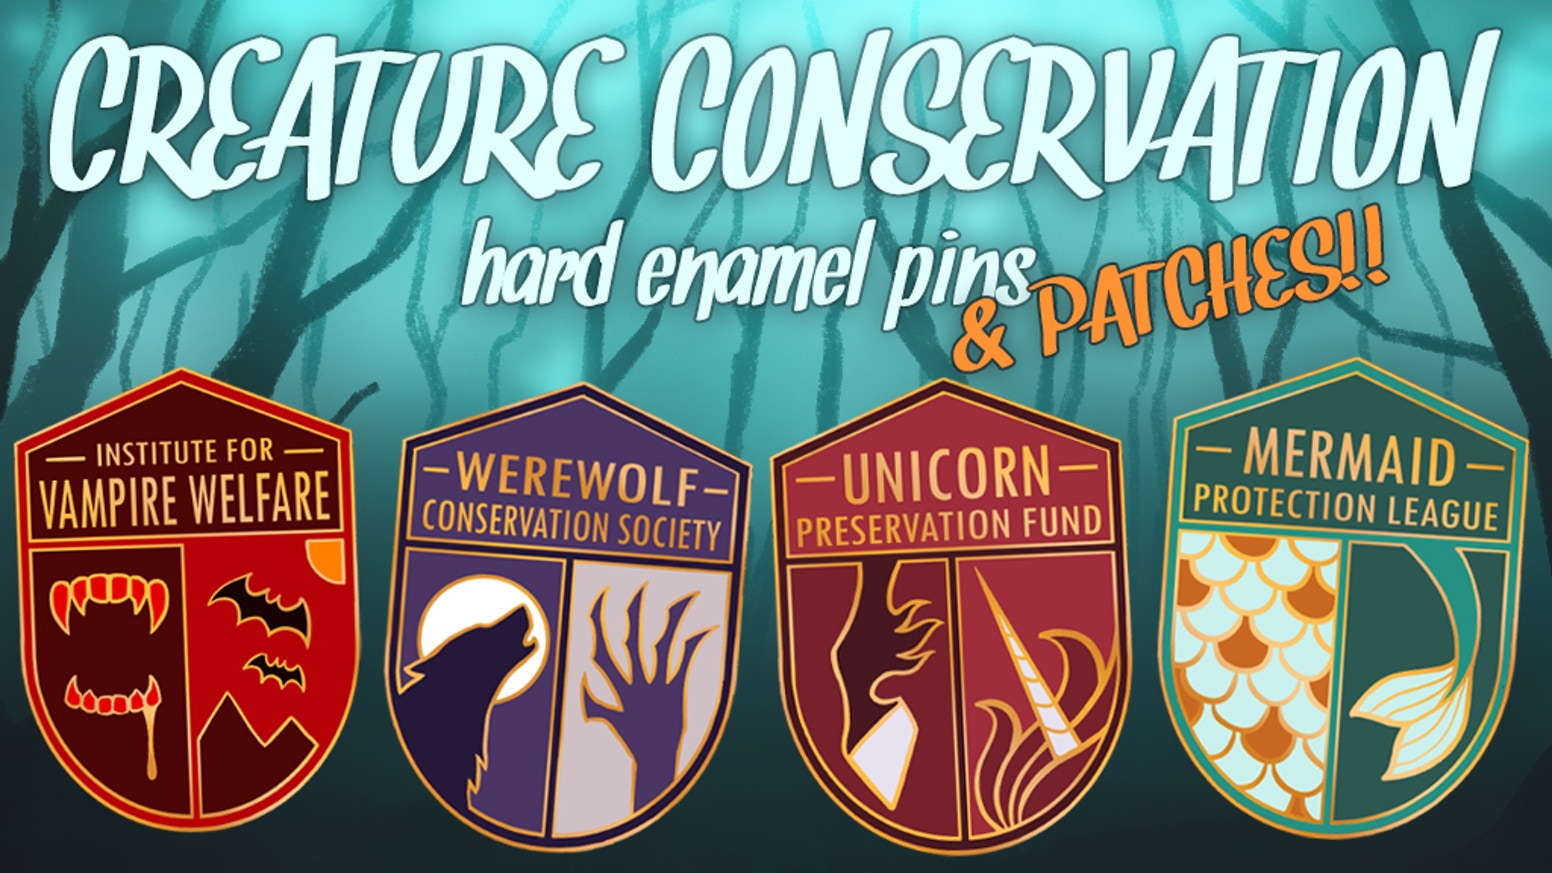 Show your support for your favorite fantastic creatures with these conservation pins & patches!